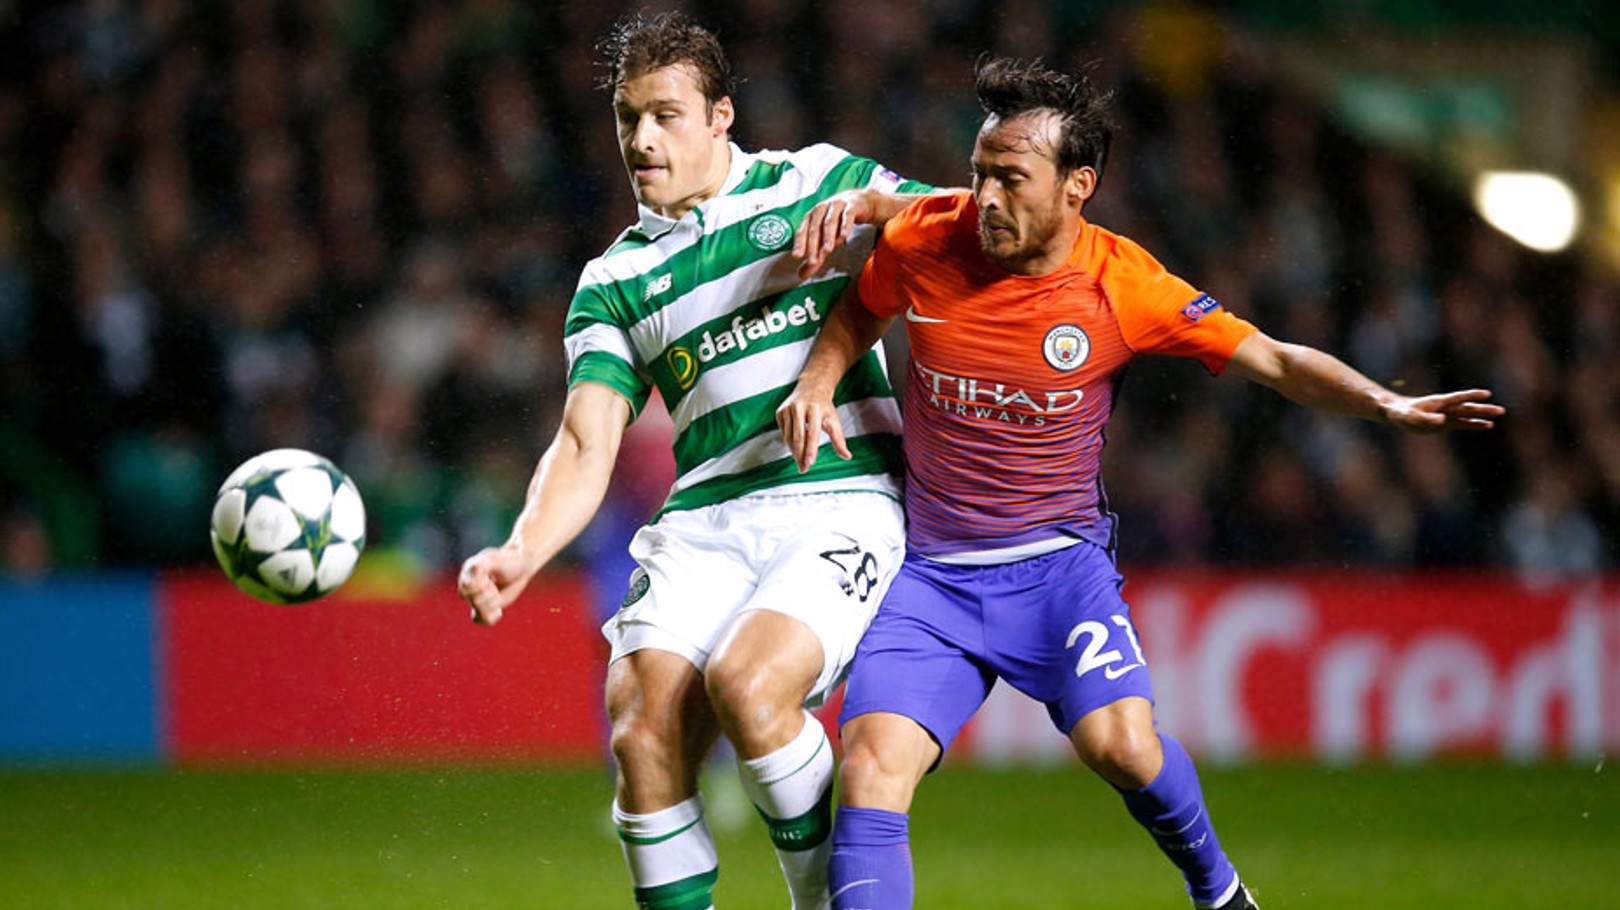 BATTLE: Manchester City's David Silva and Celtic's Erik Sviatchenko battle for the ball